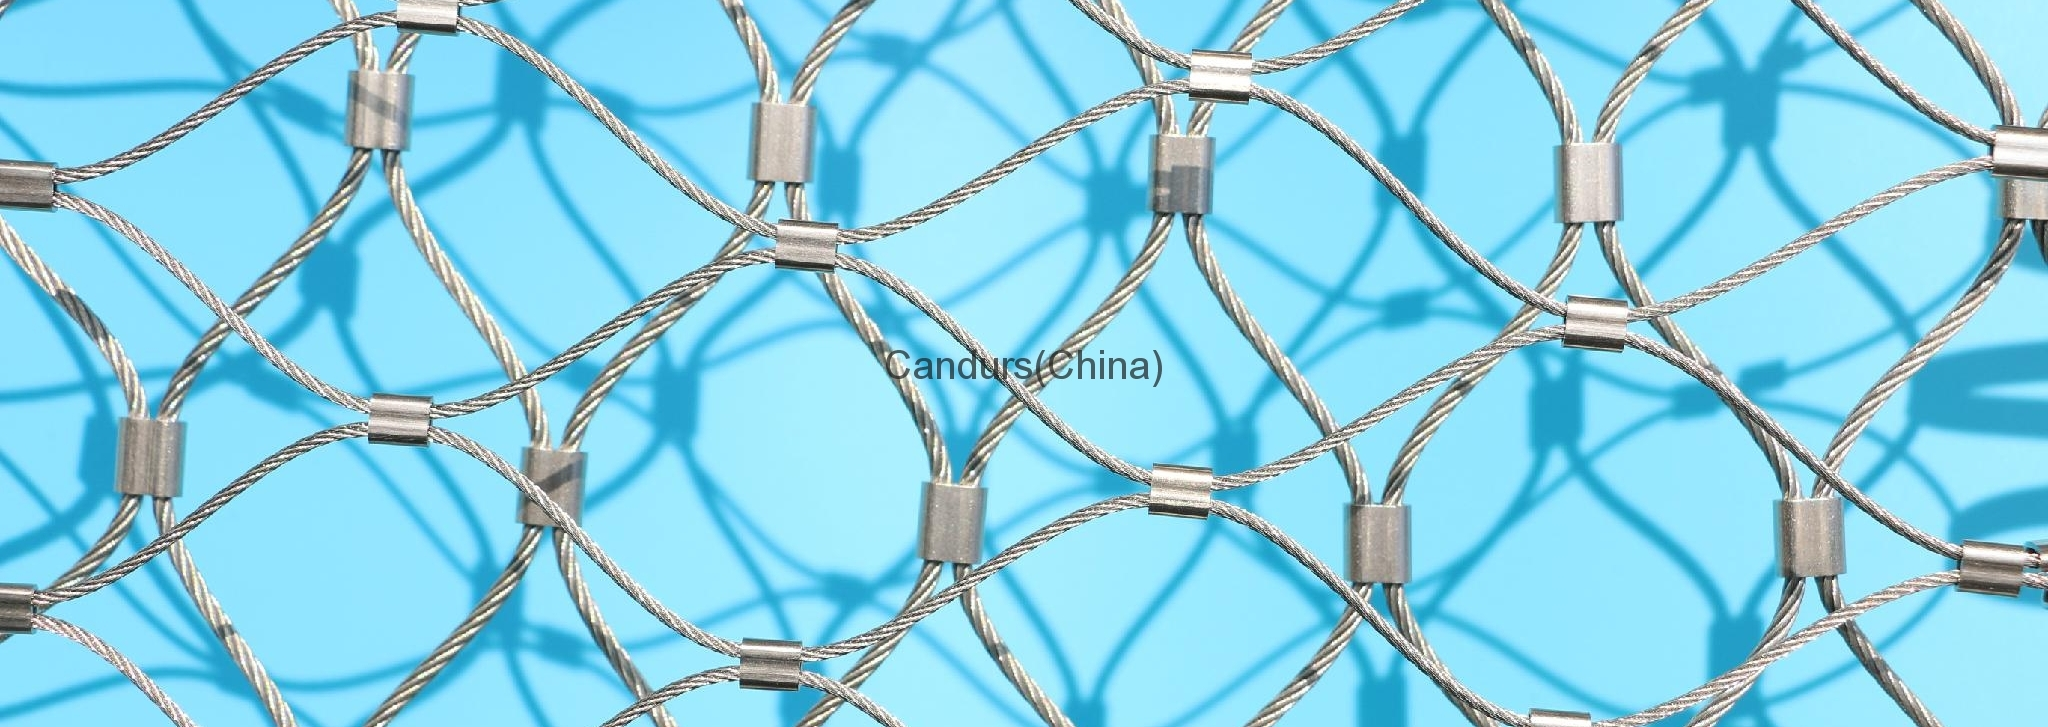 DecorRope Stainless Steel Cable Mesh